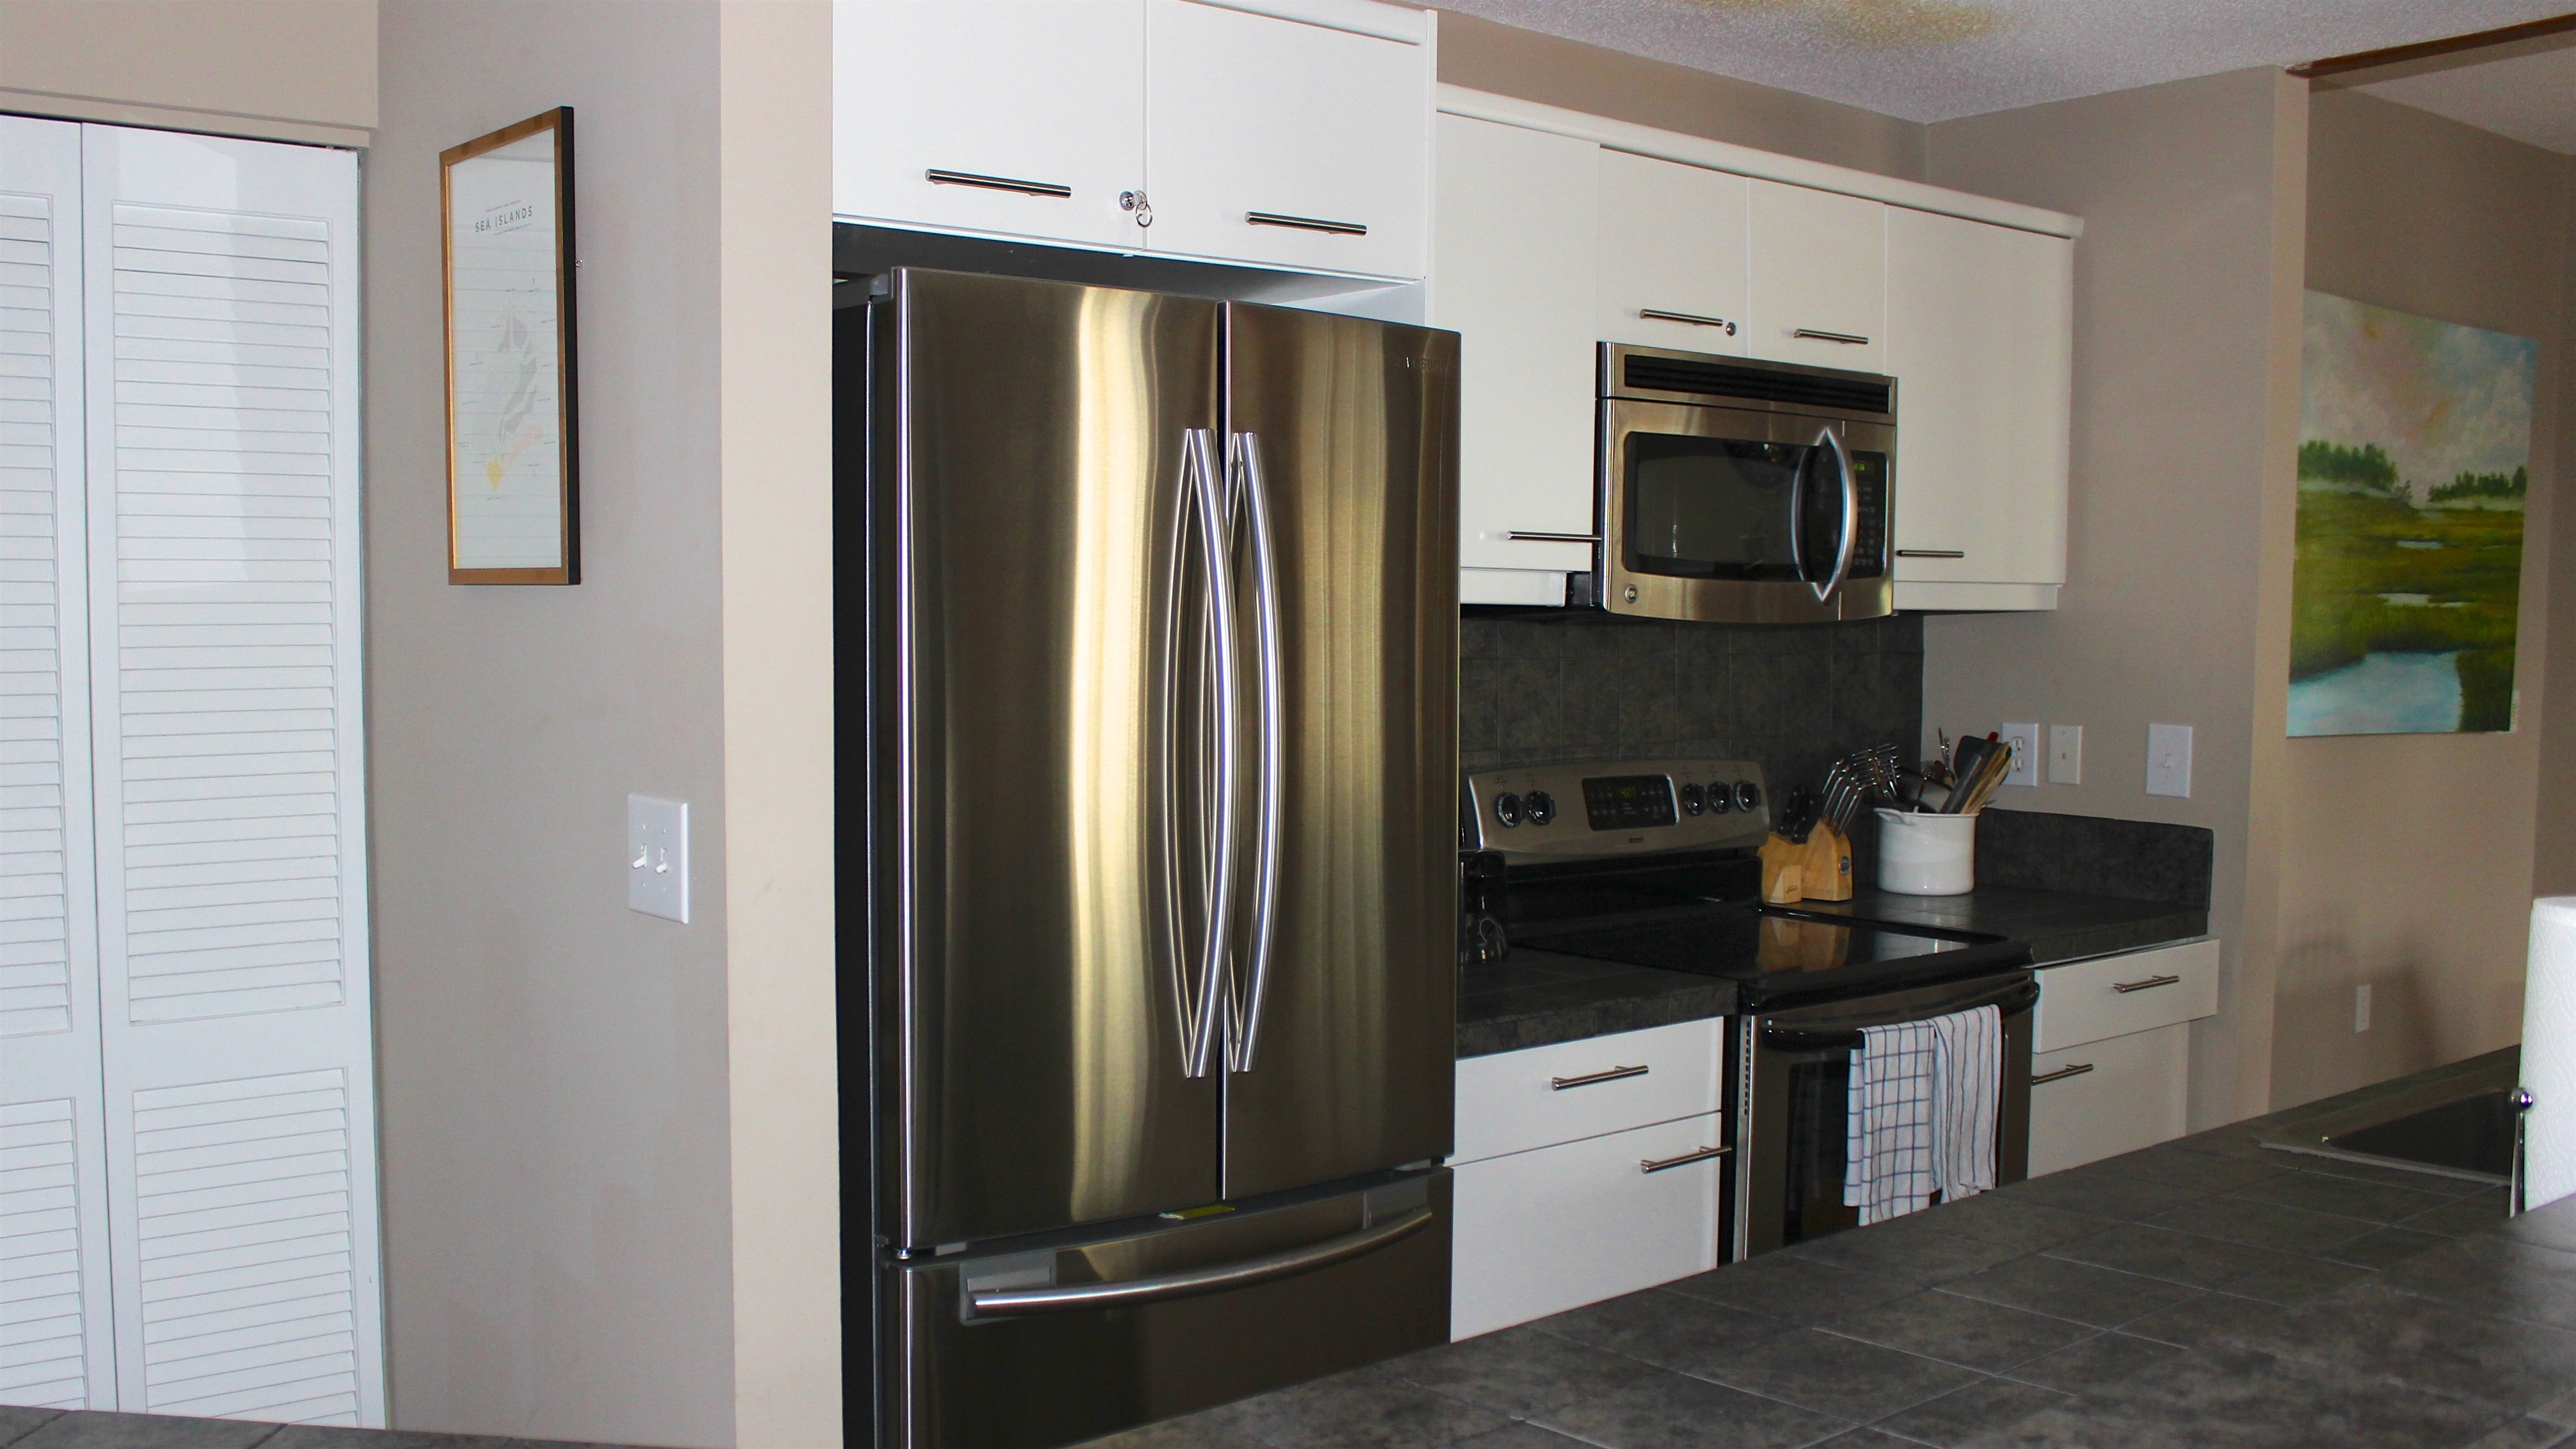 Kitchen highlights include tile counters and stainless appliances.